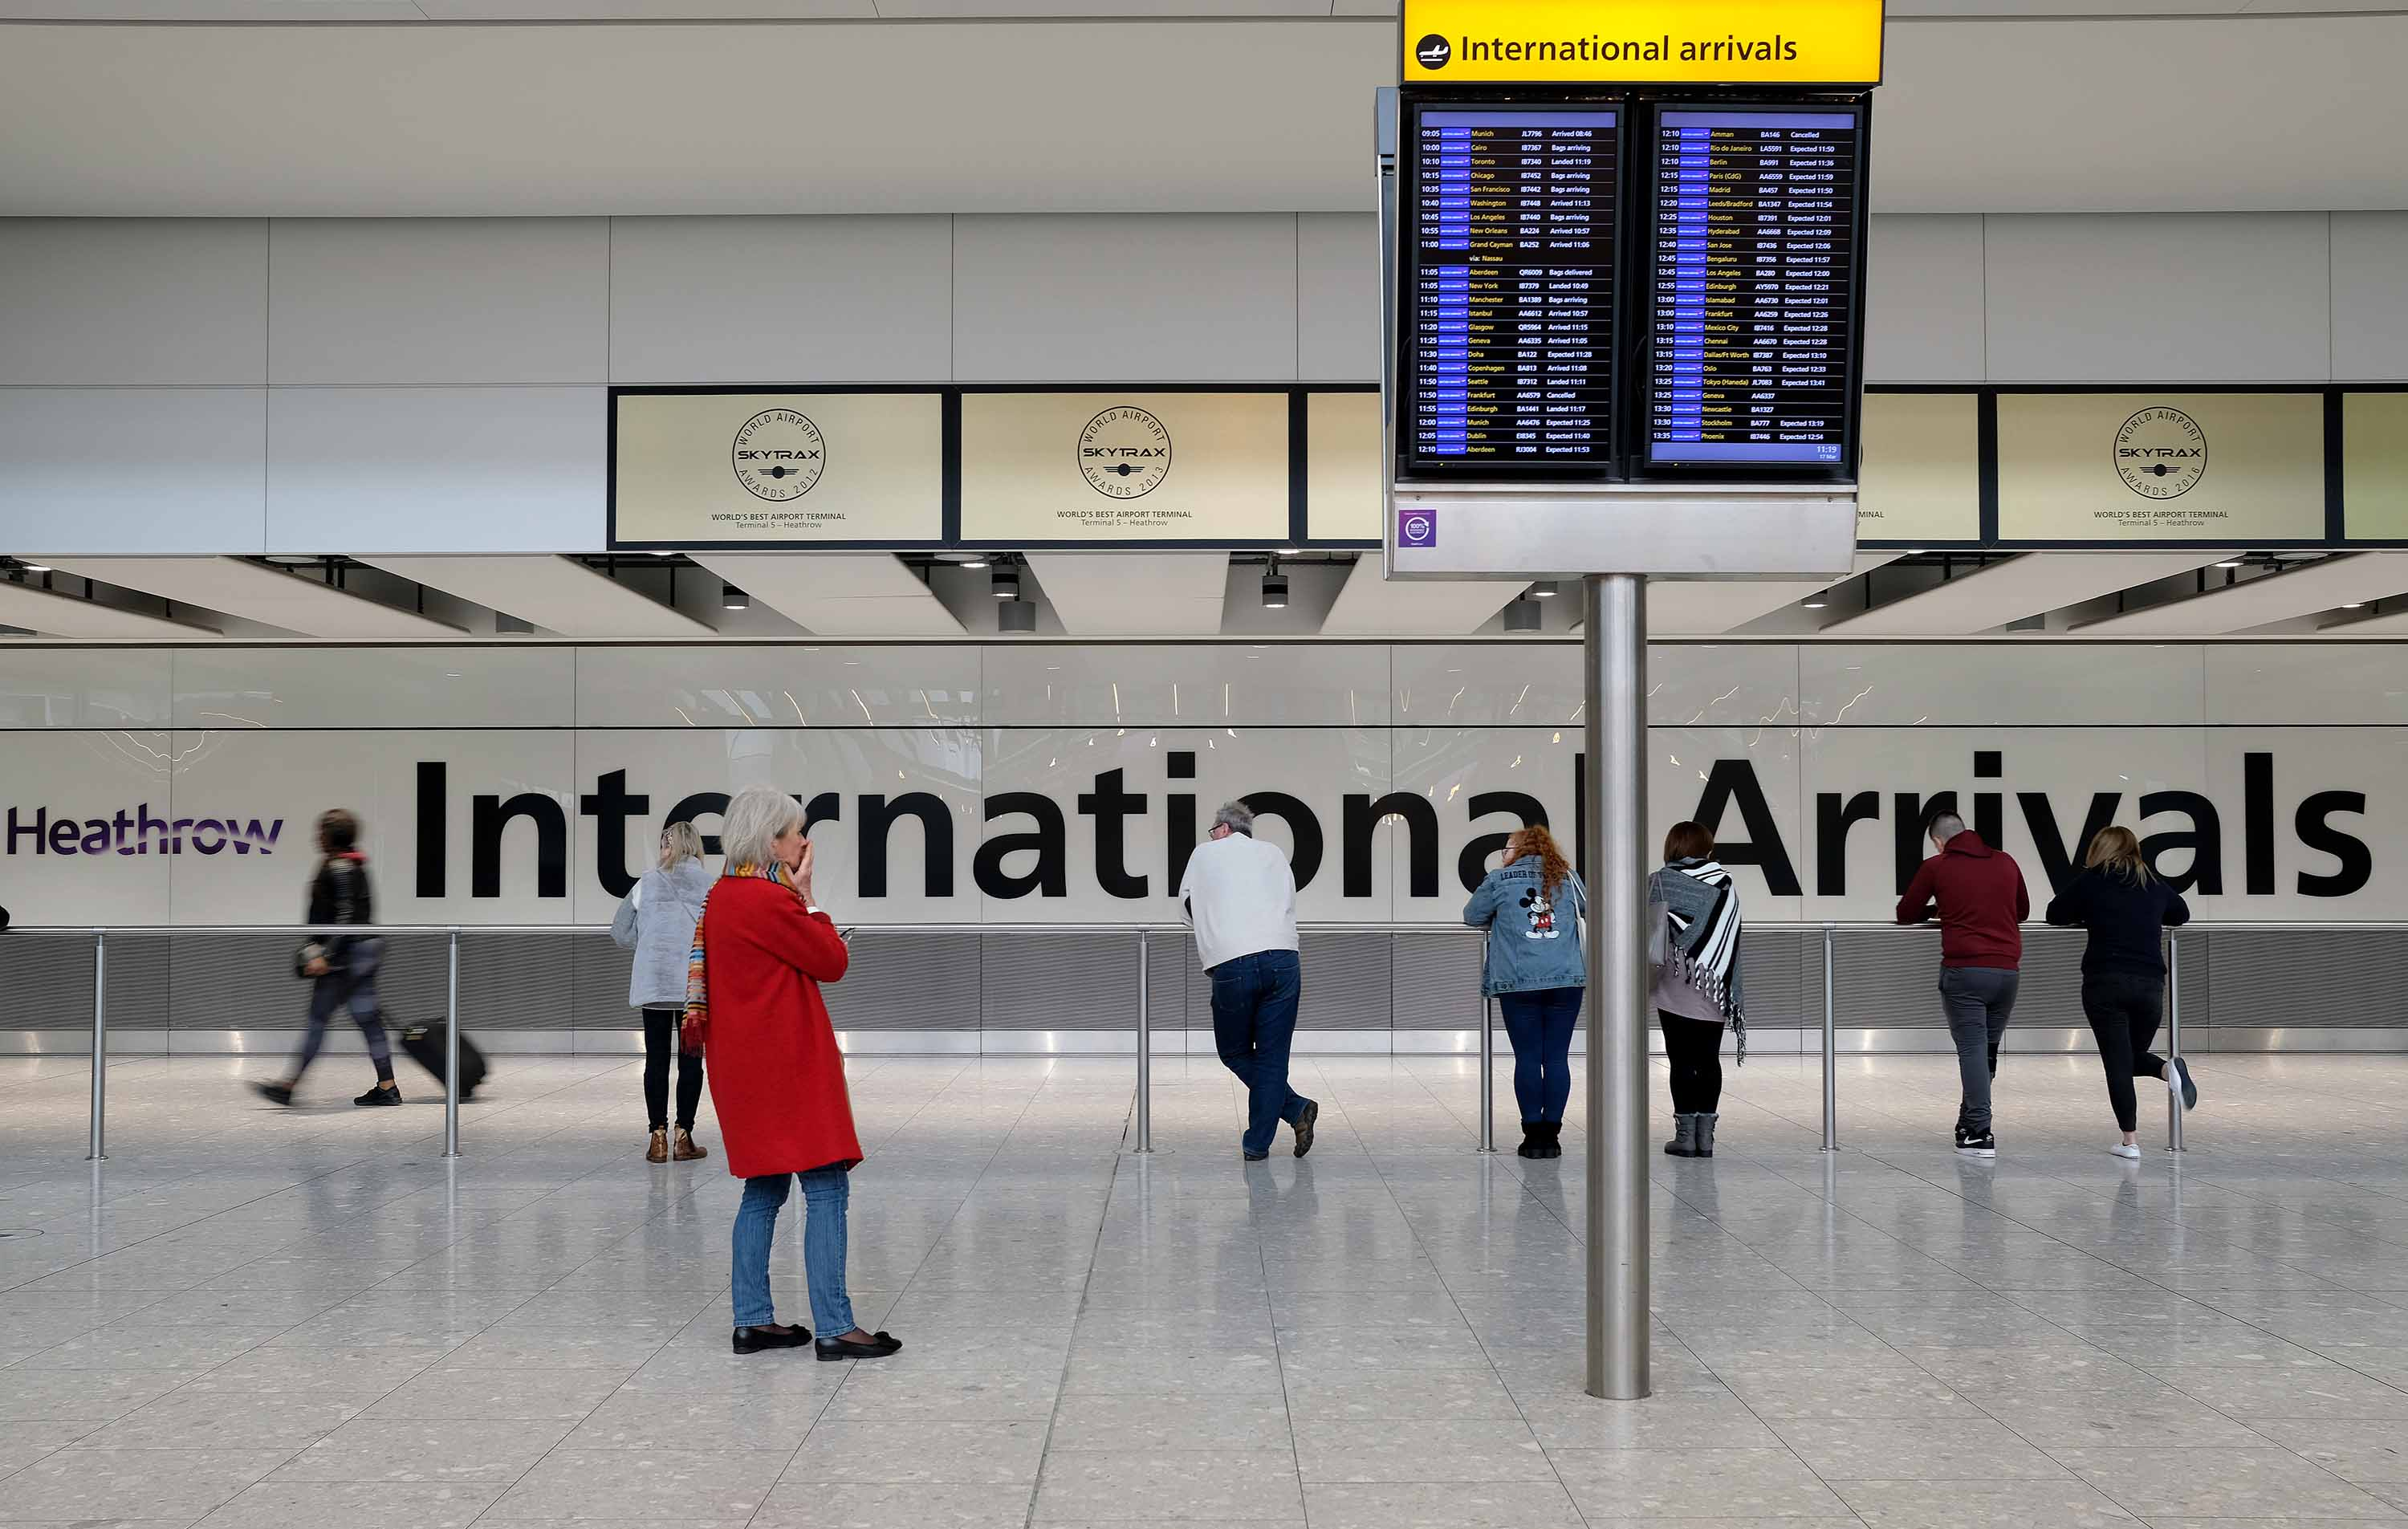 People wait for passengers at the International Arrivals hall in Heathrow Airport, in London, England, on March 17.